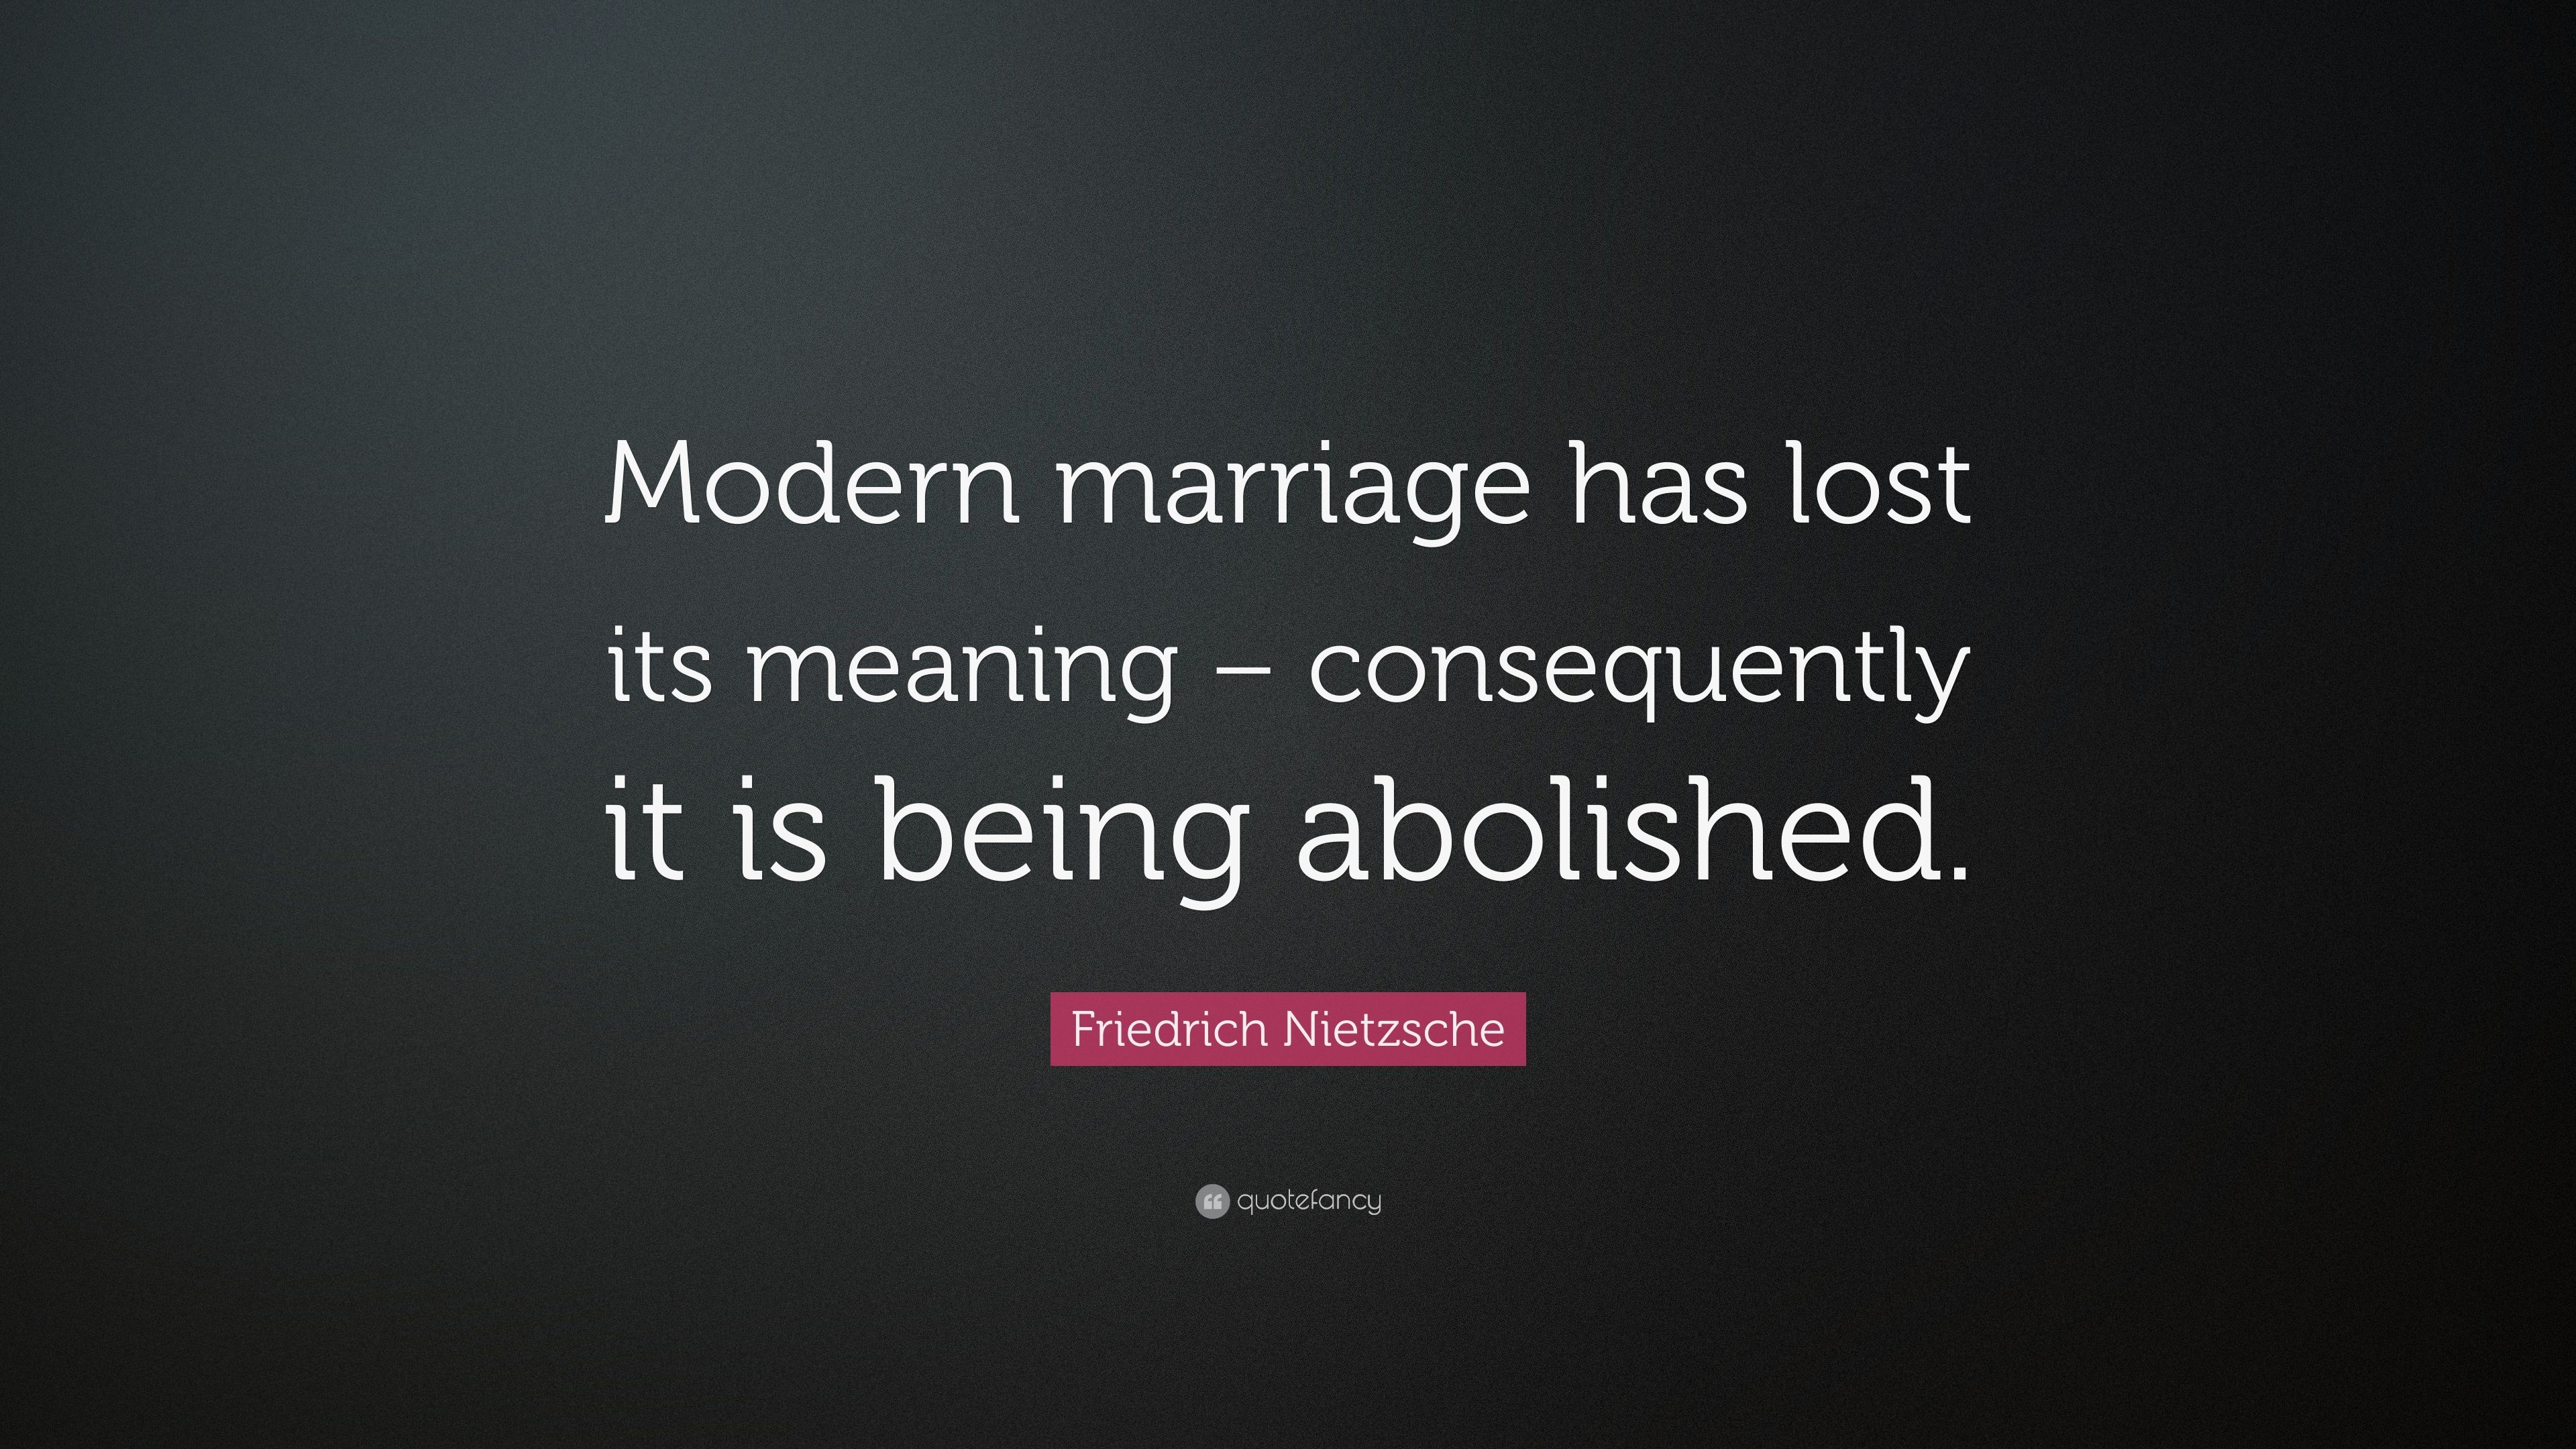 Beautiful Friedrich Nietzsche Quote: U201cModern Marriage Has Lost Its Meaning U2013  Consequently It Is Being